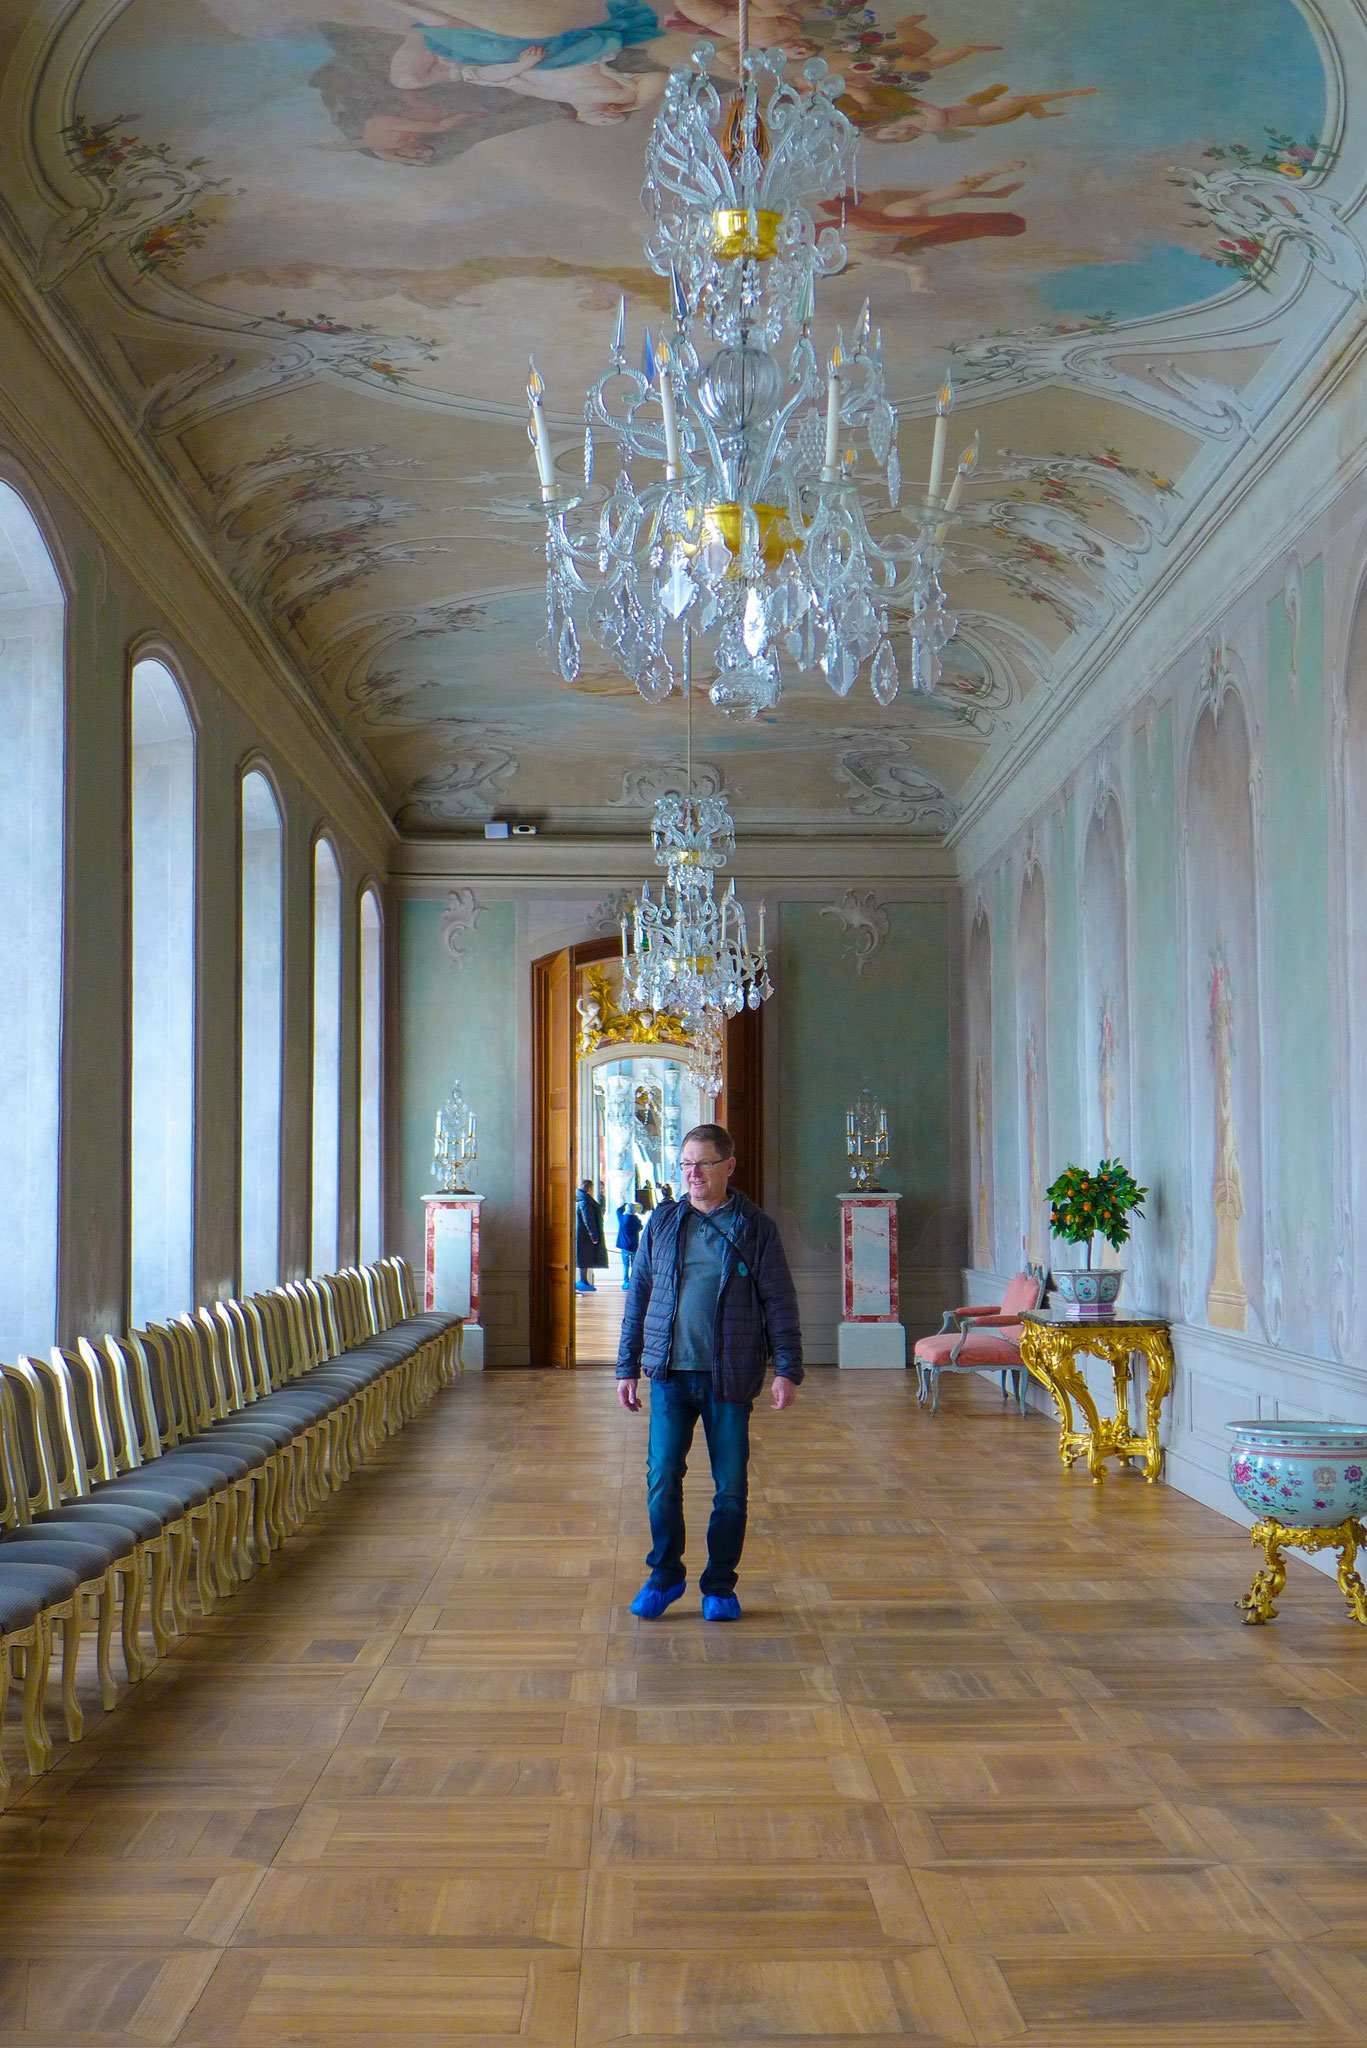 The Rondale palace